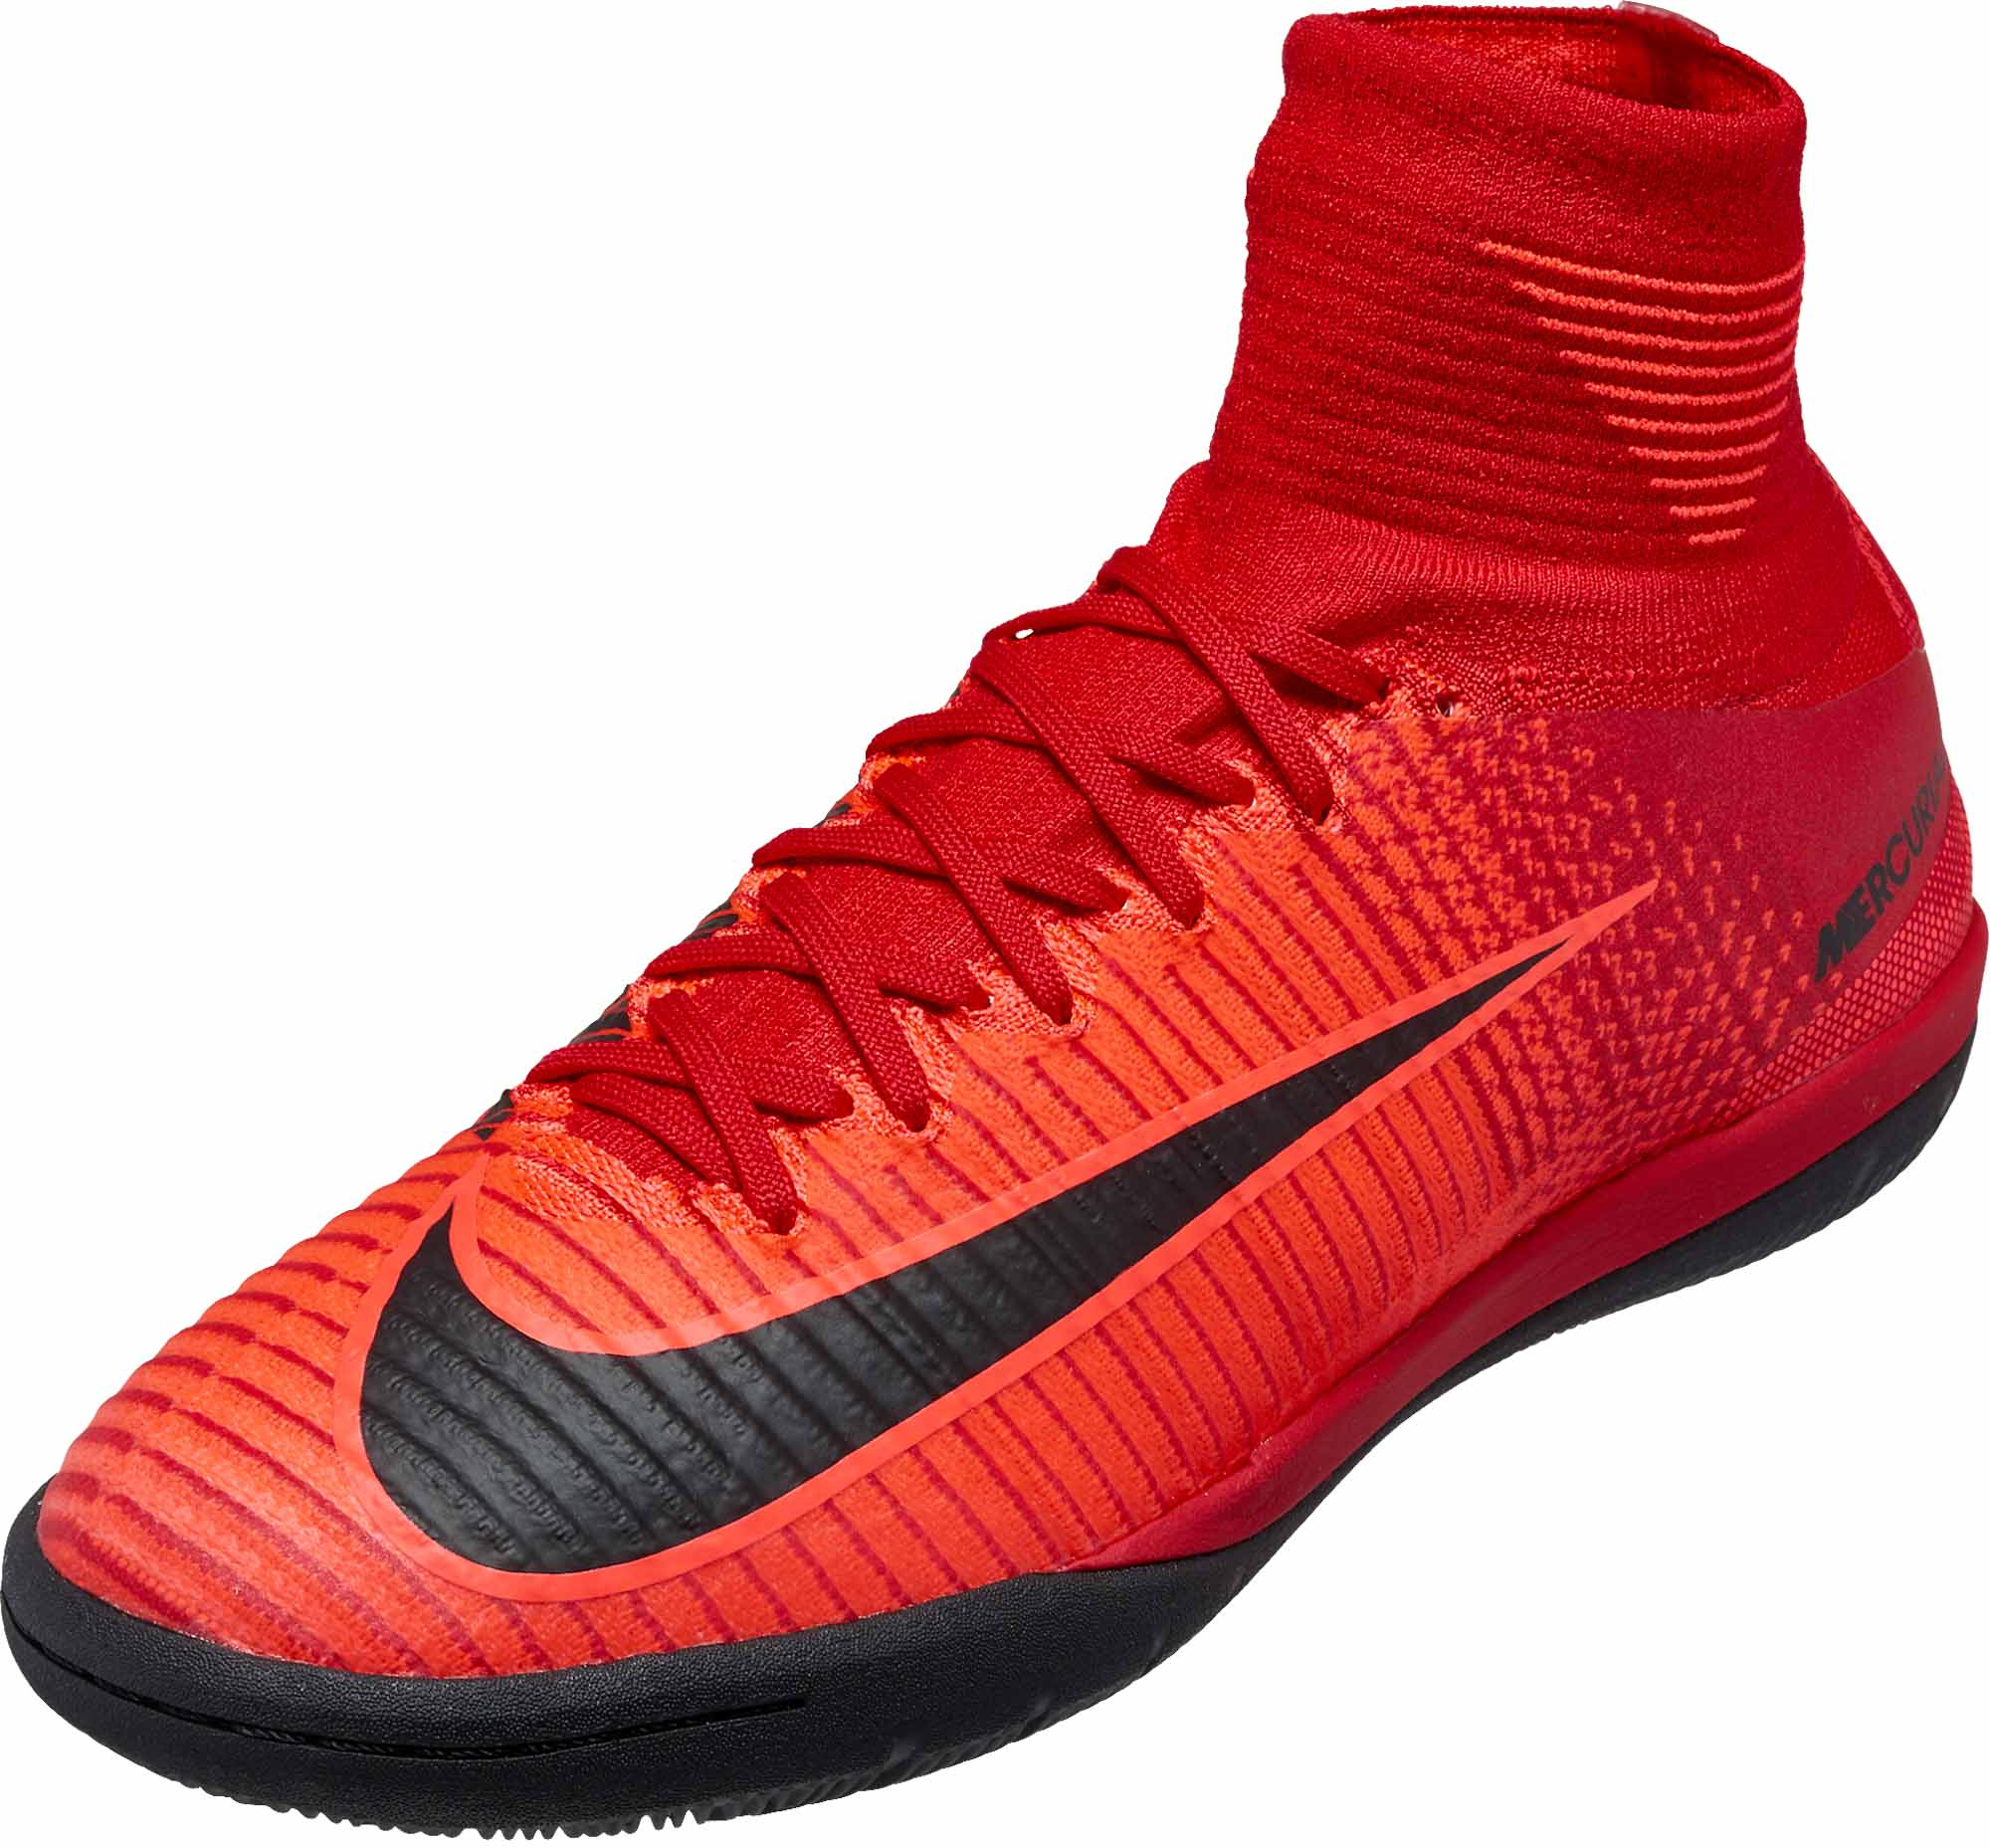 ed6364650515 Nike MercurialX Proximo II IC - University Red   Black - Soccer Master